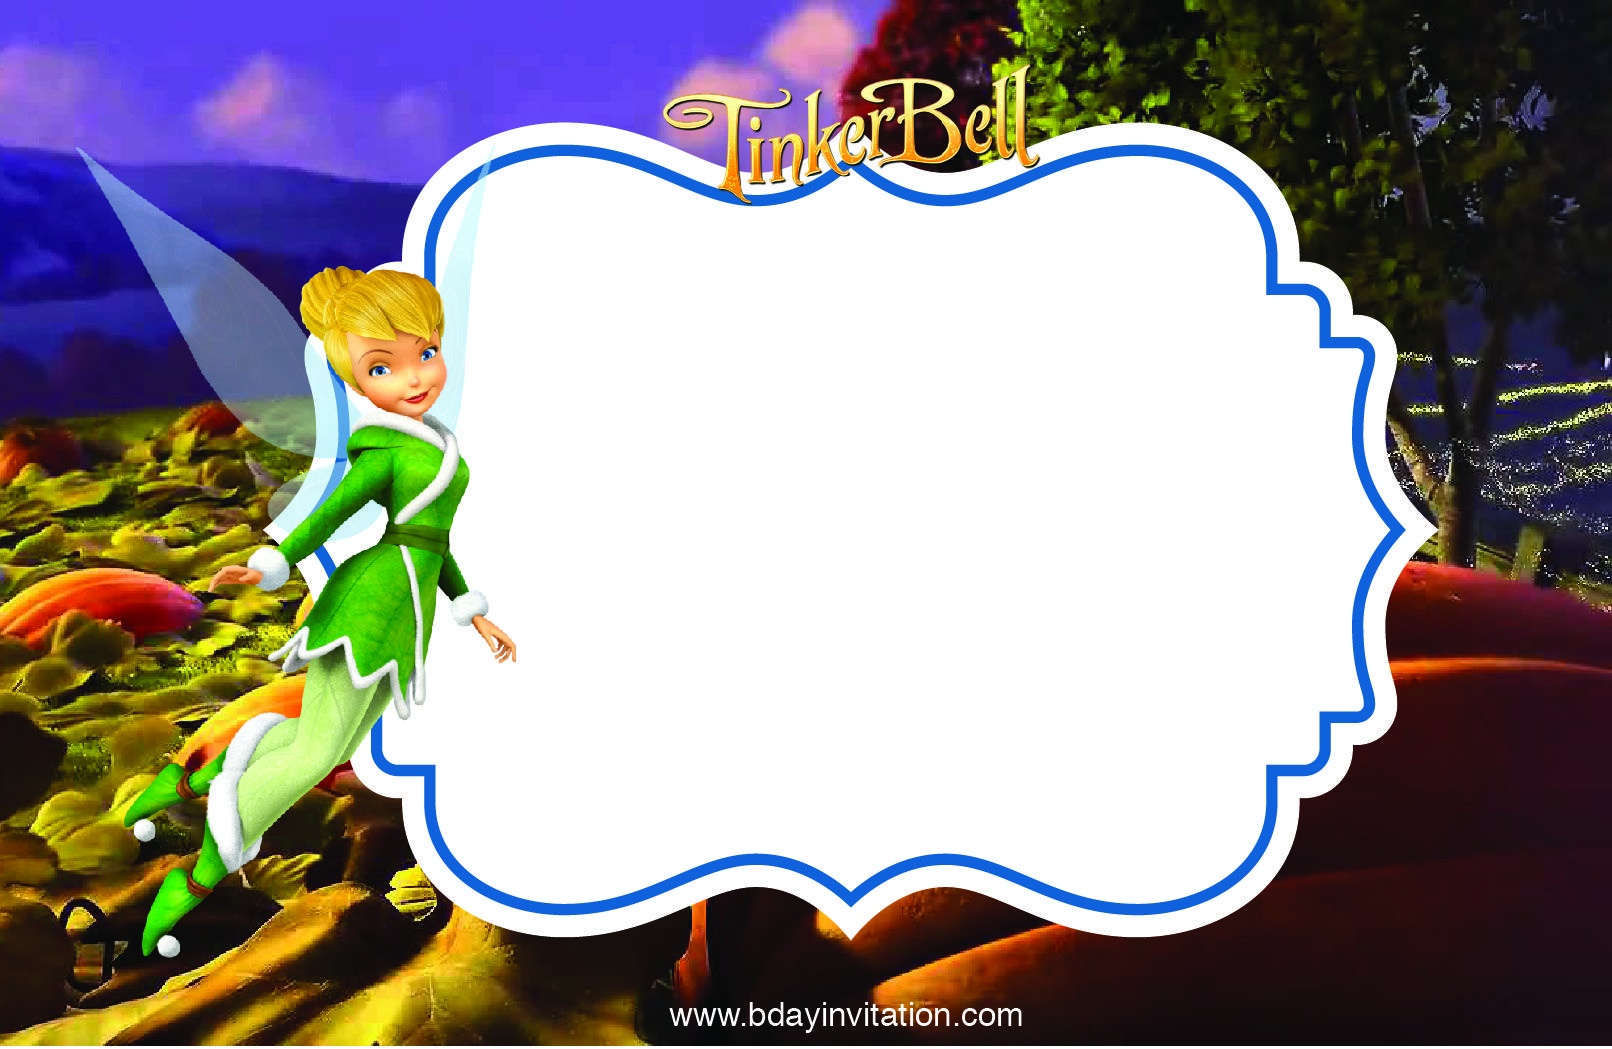 Awesome Free Printable Disney Tinkerbell Birthday Invitation - Free Tinkerbell Printable Birthday Invitations